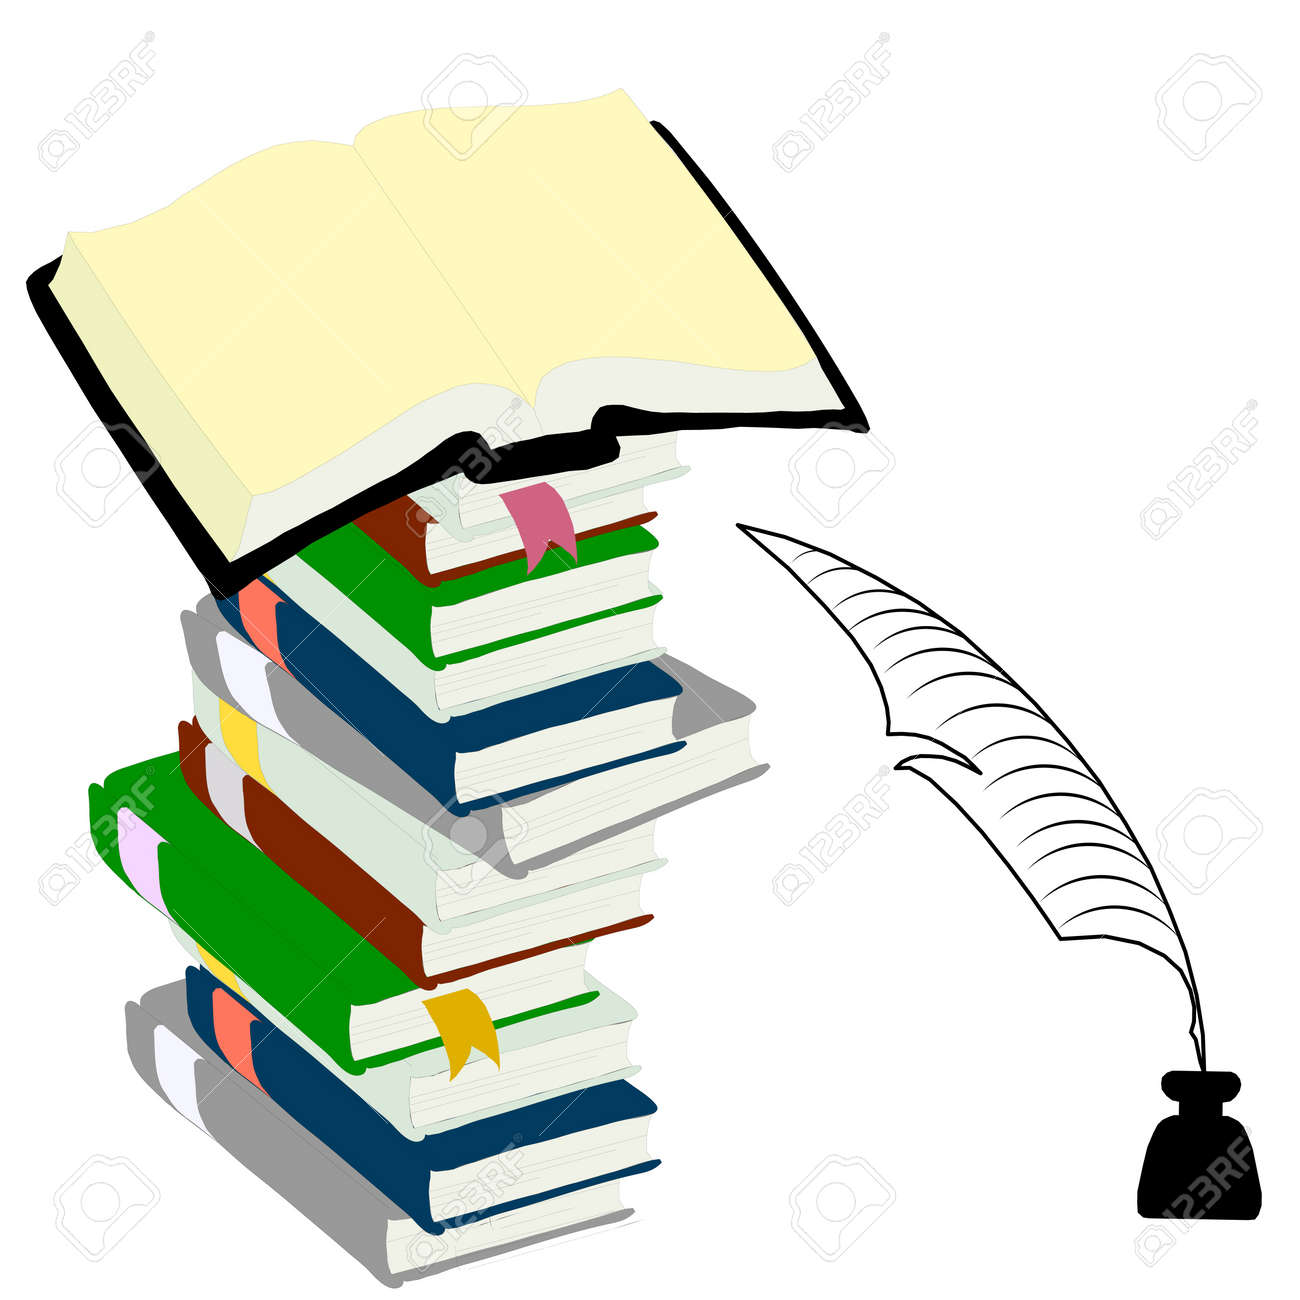 Inkwell  feather and hardcover books  for education concept. Stock Vector - 11582732